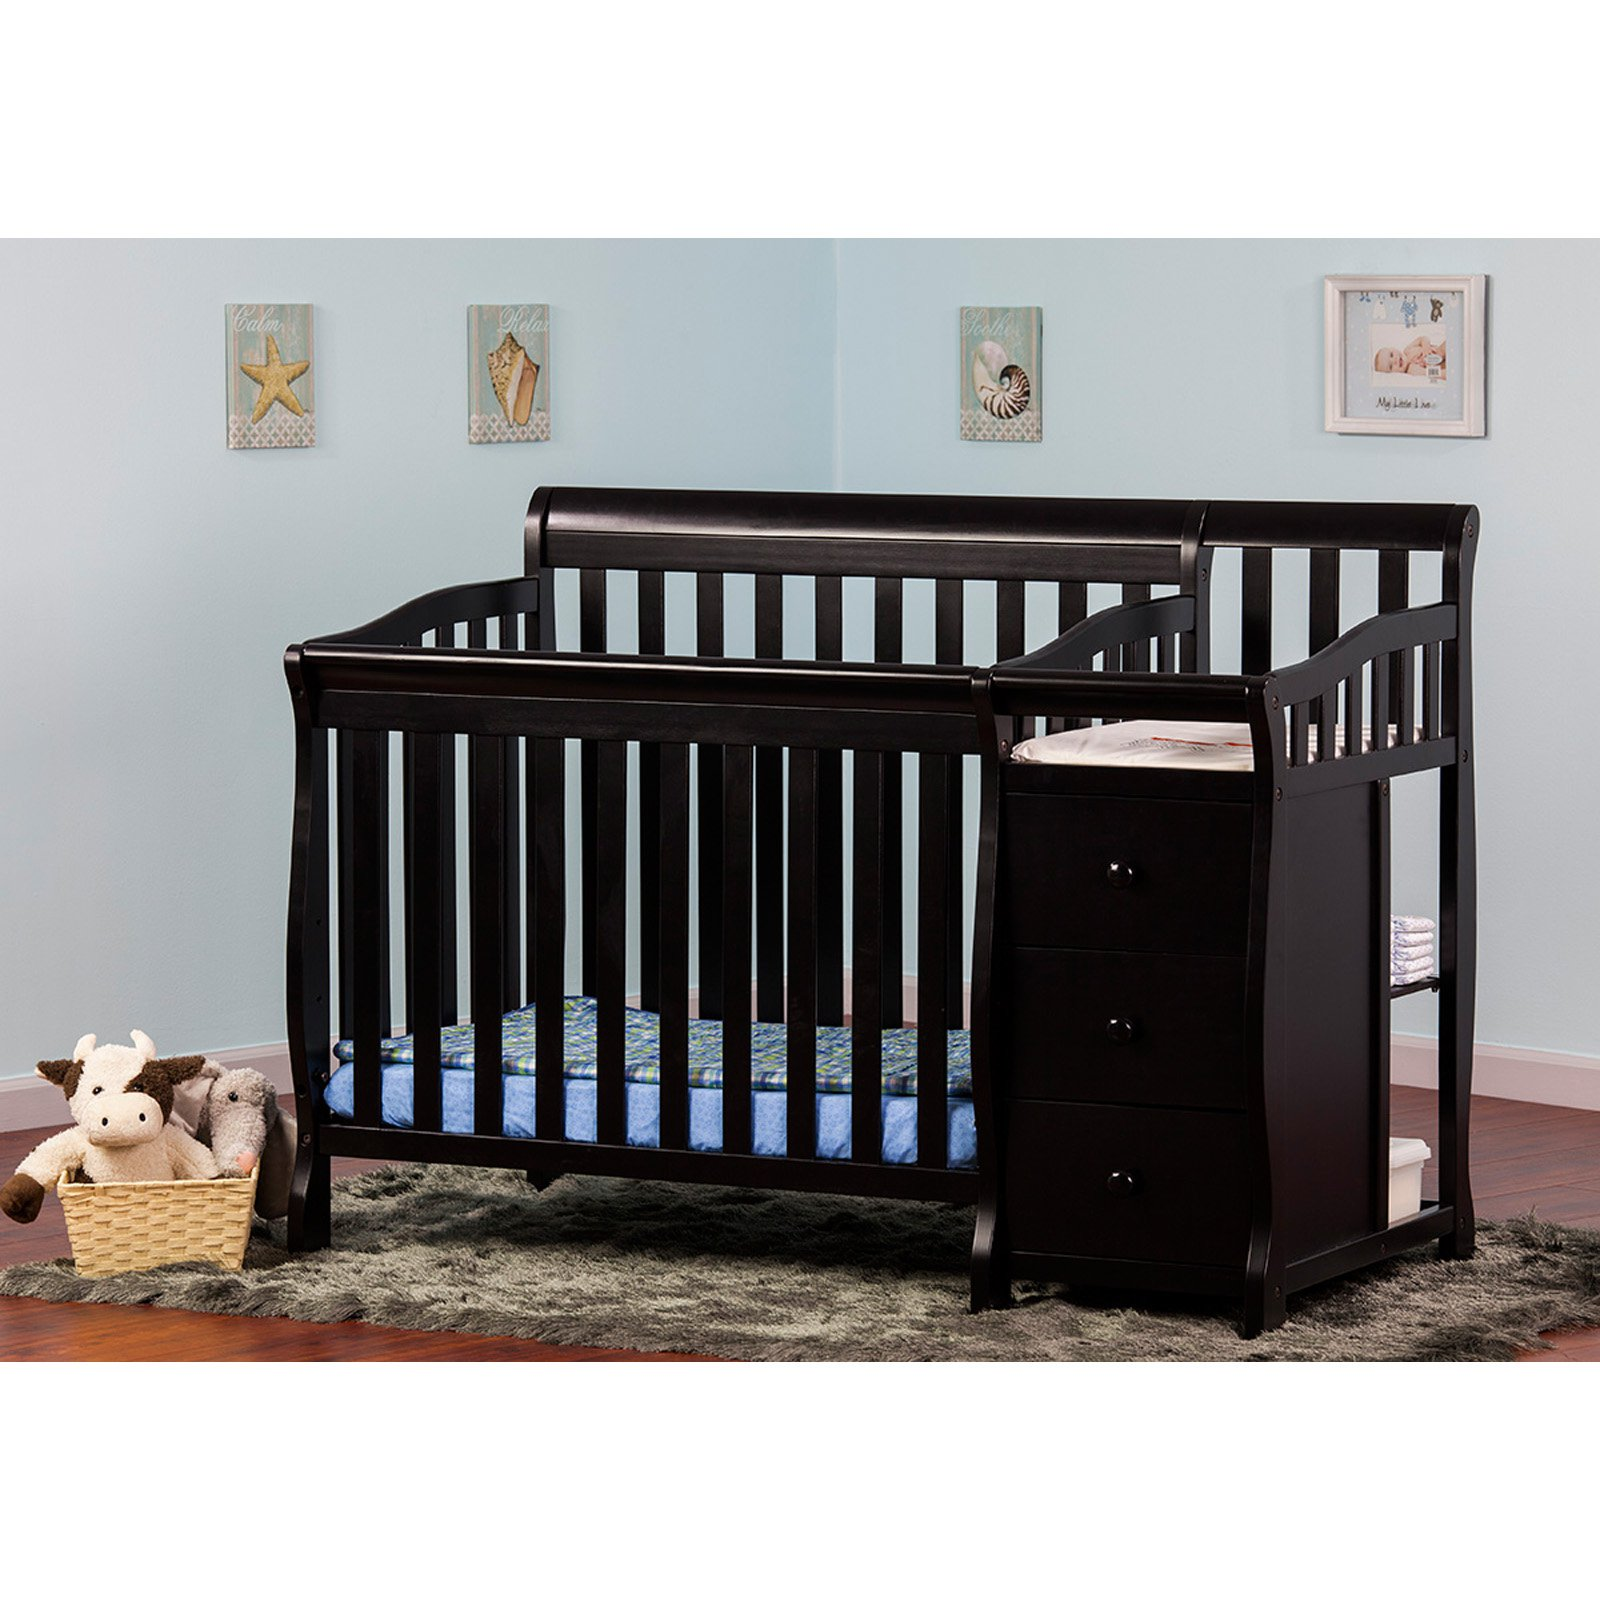 Dream On Me Jayden 4 In 1 Mini Convertible Crib And Changer With Conversion Posts Cribs Convertible Crib Mini Crib